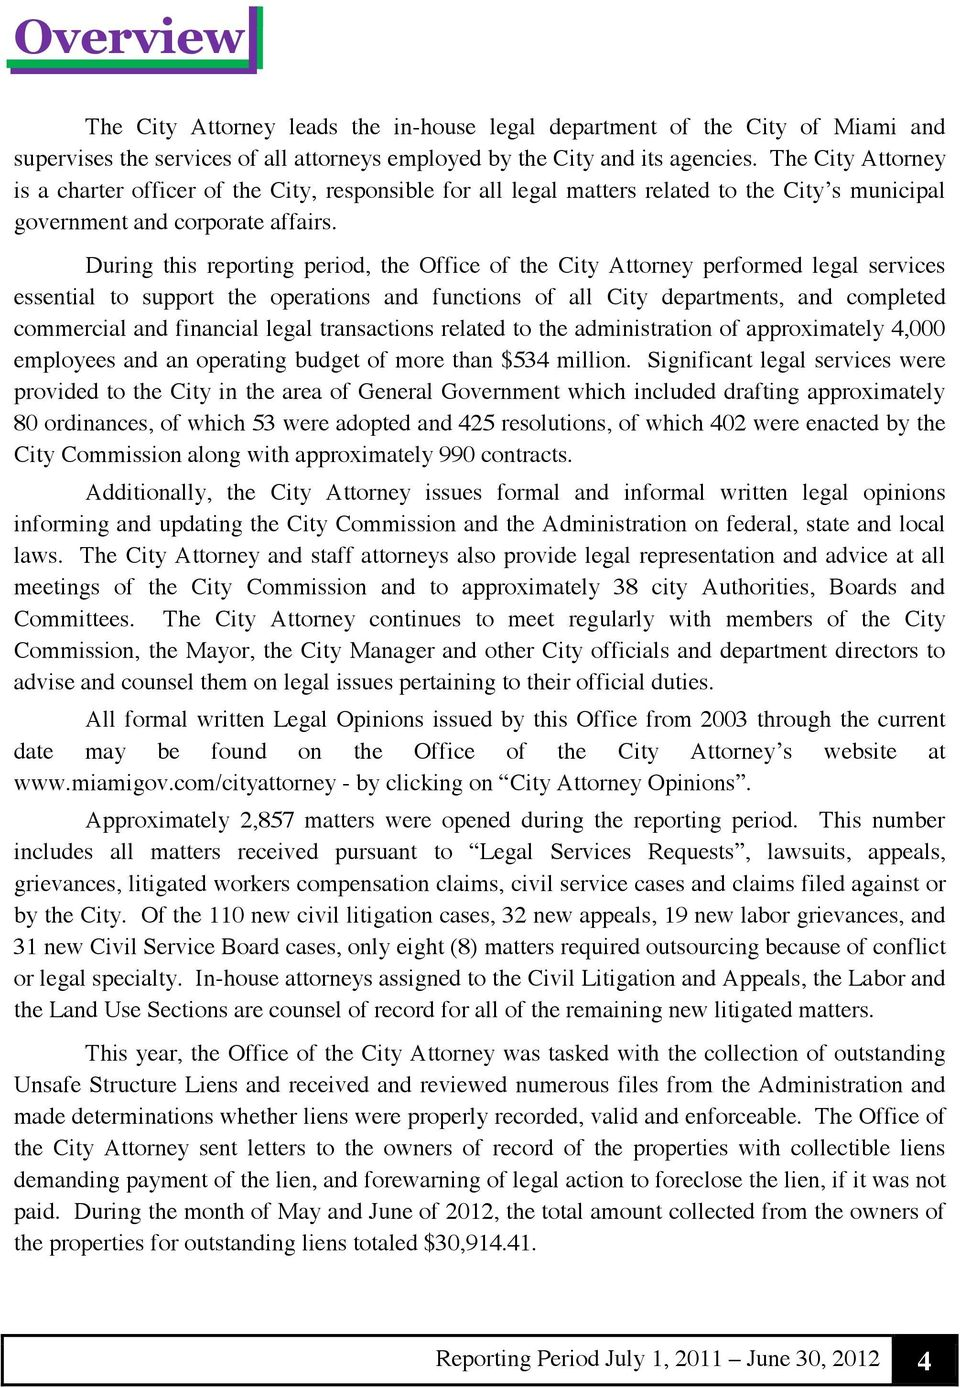 During this reporting period, the Office of the City Attorney performed legal services essential to support the operations and functions of all City departments, and completed commercial and